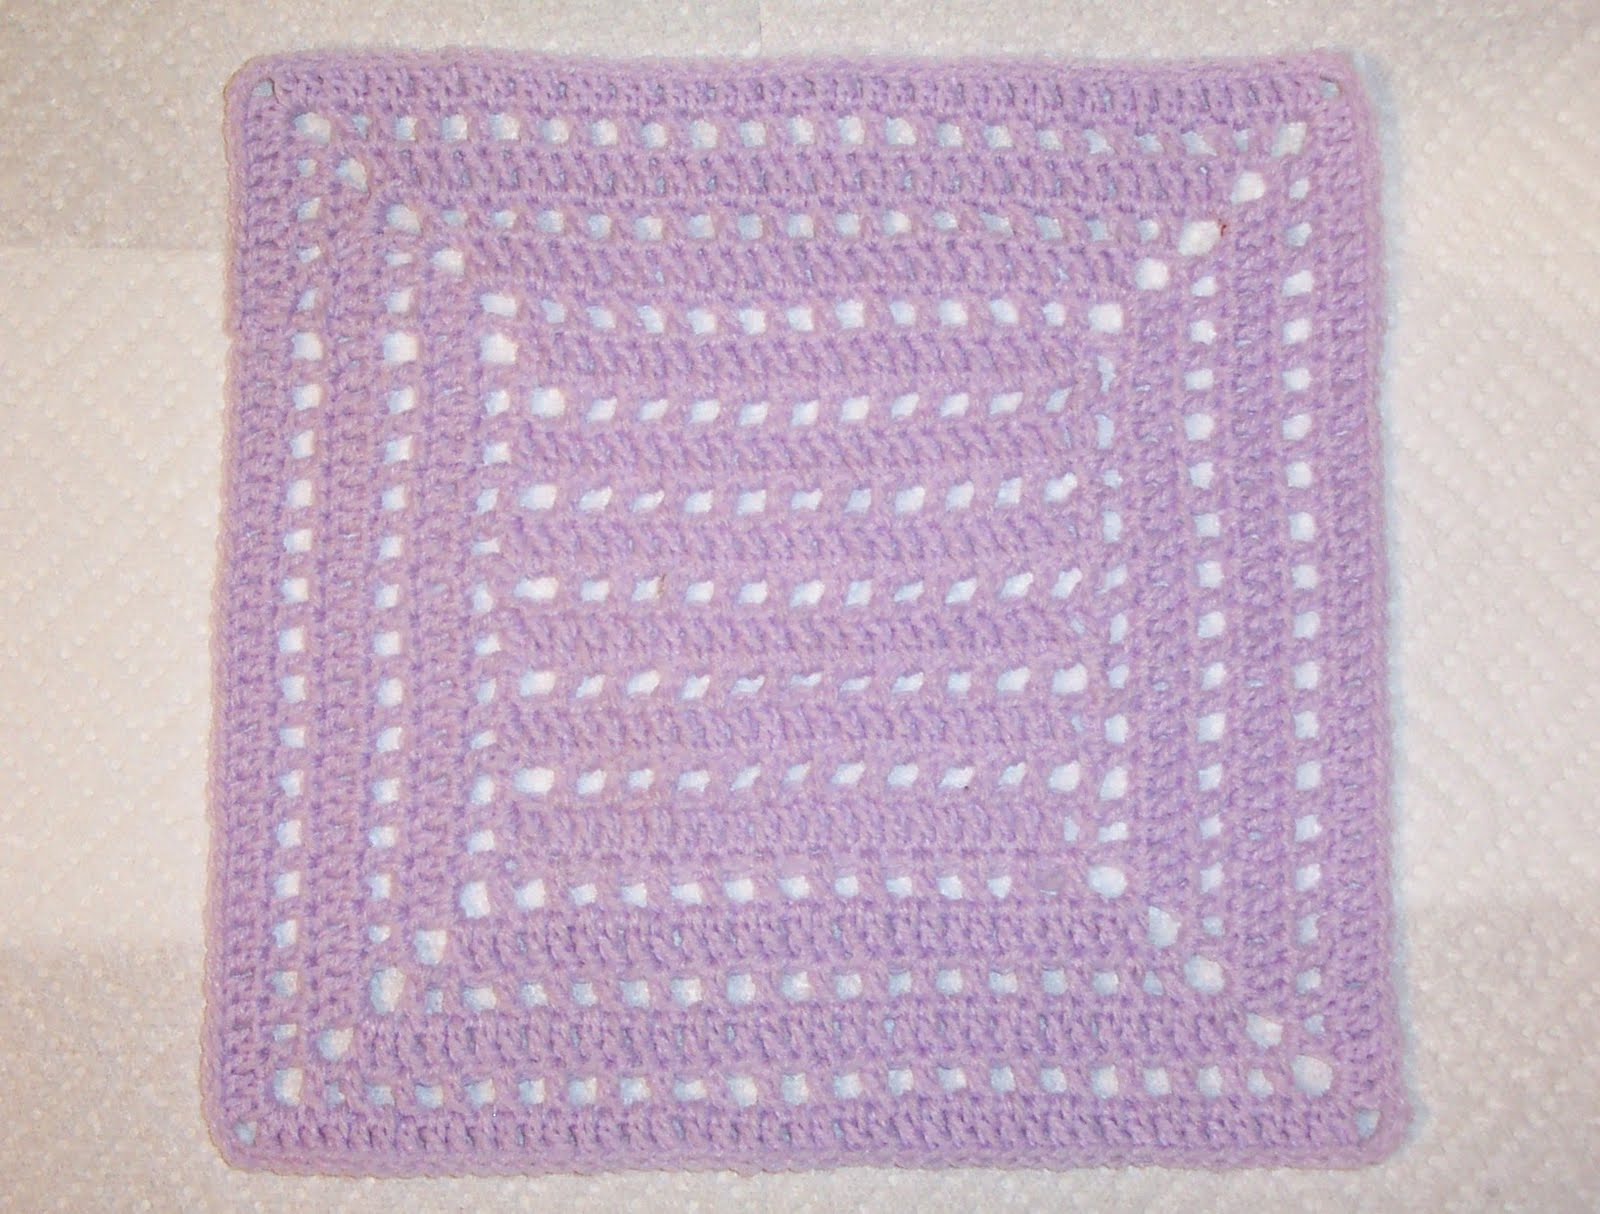 Knitting Holes Pattern : SmoothFox Crochet and Knit: SmothFoxs A Whole Lotta Holes 12x12 - free p...